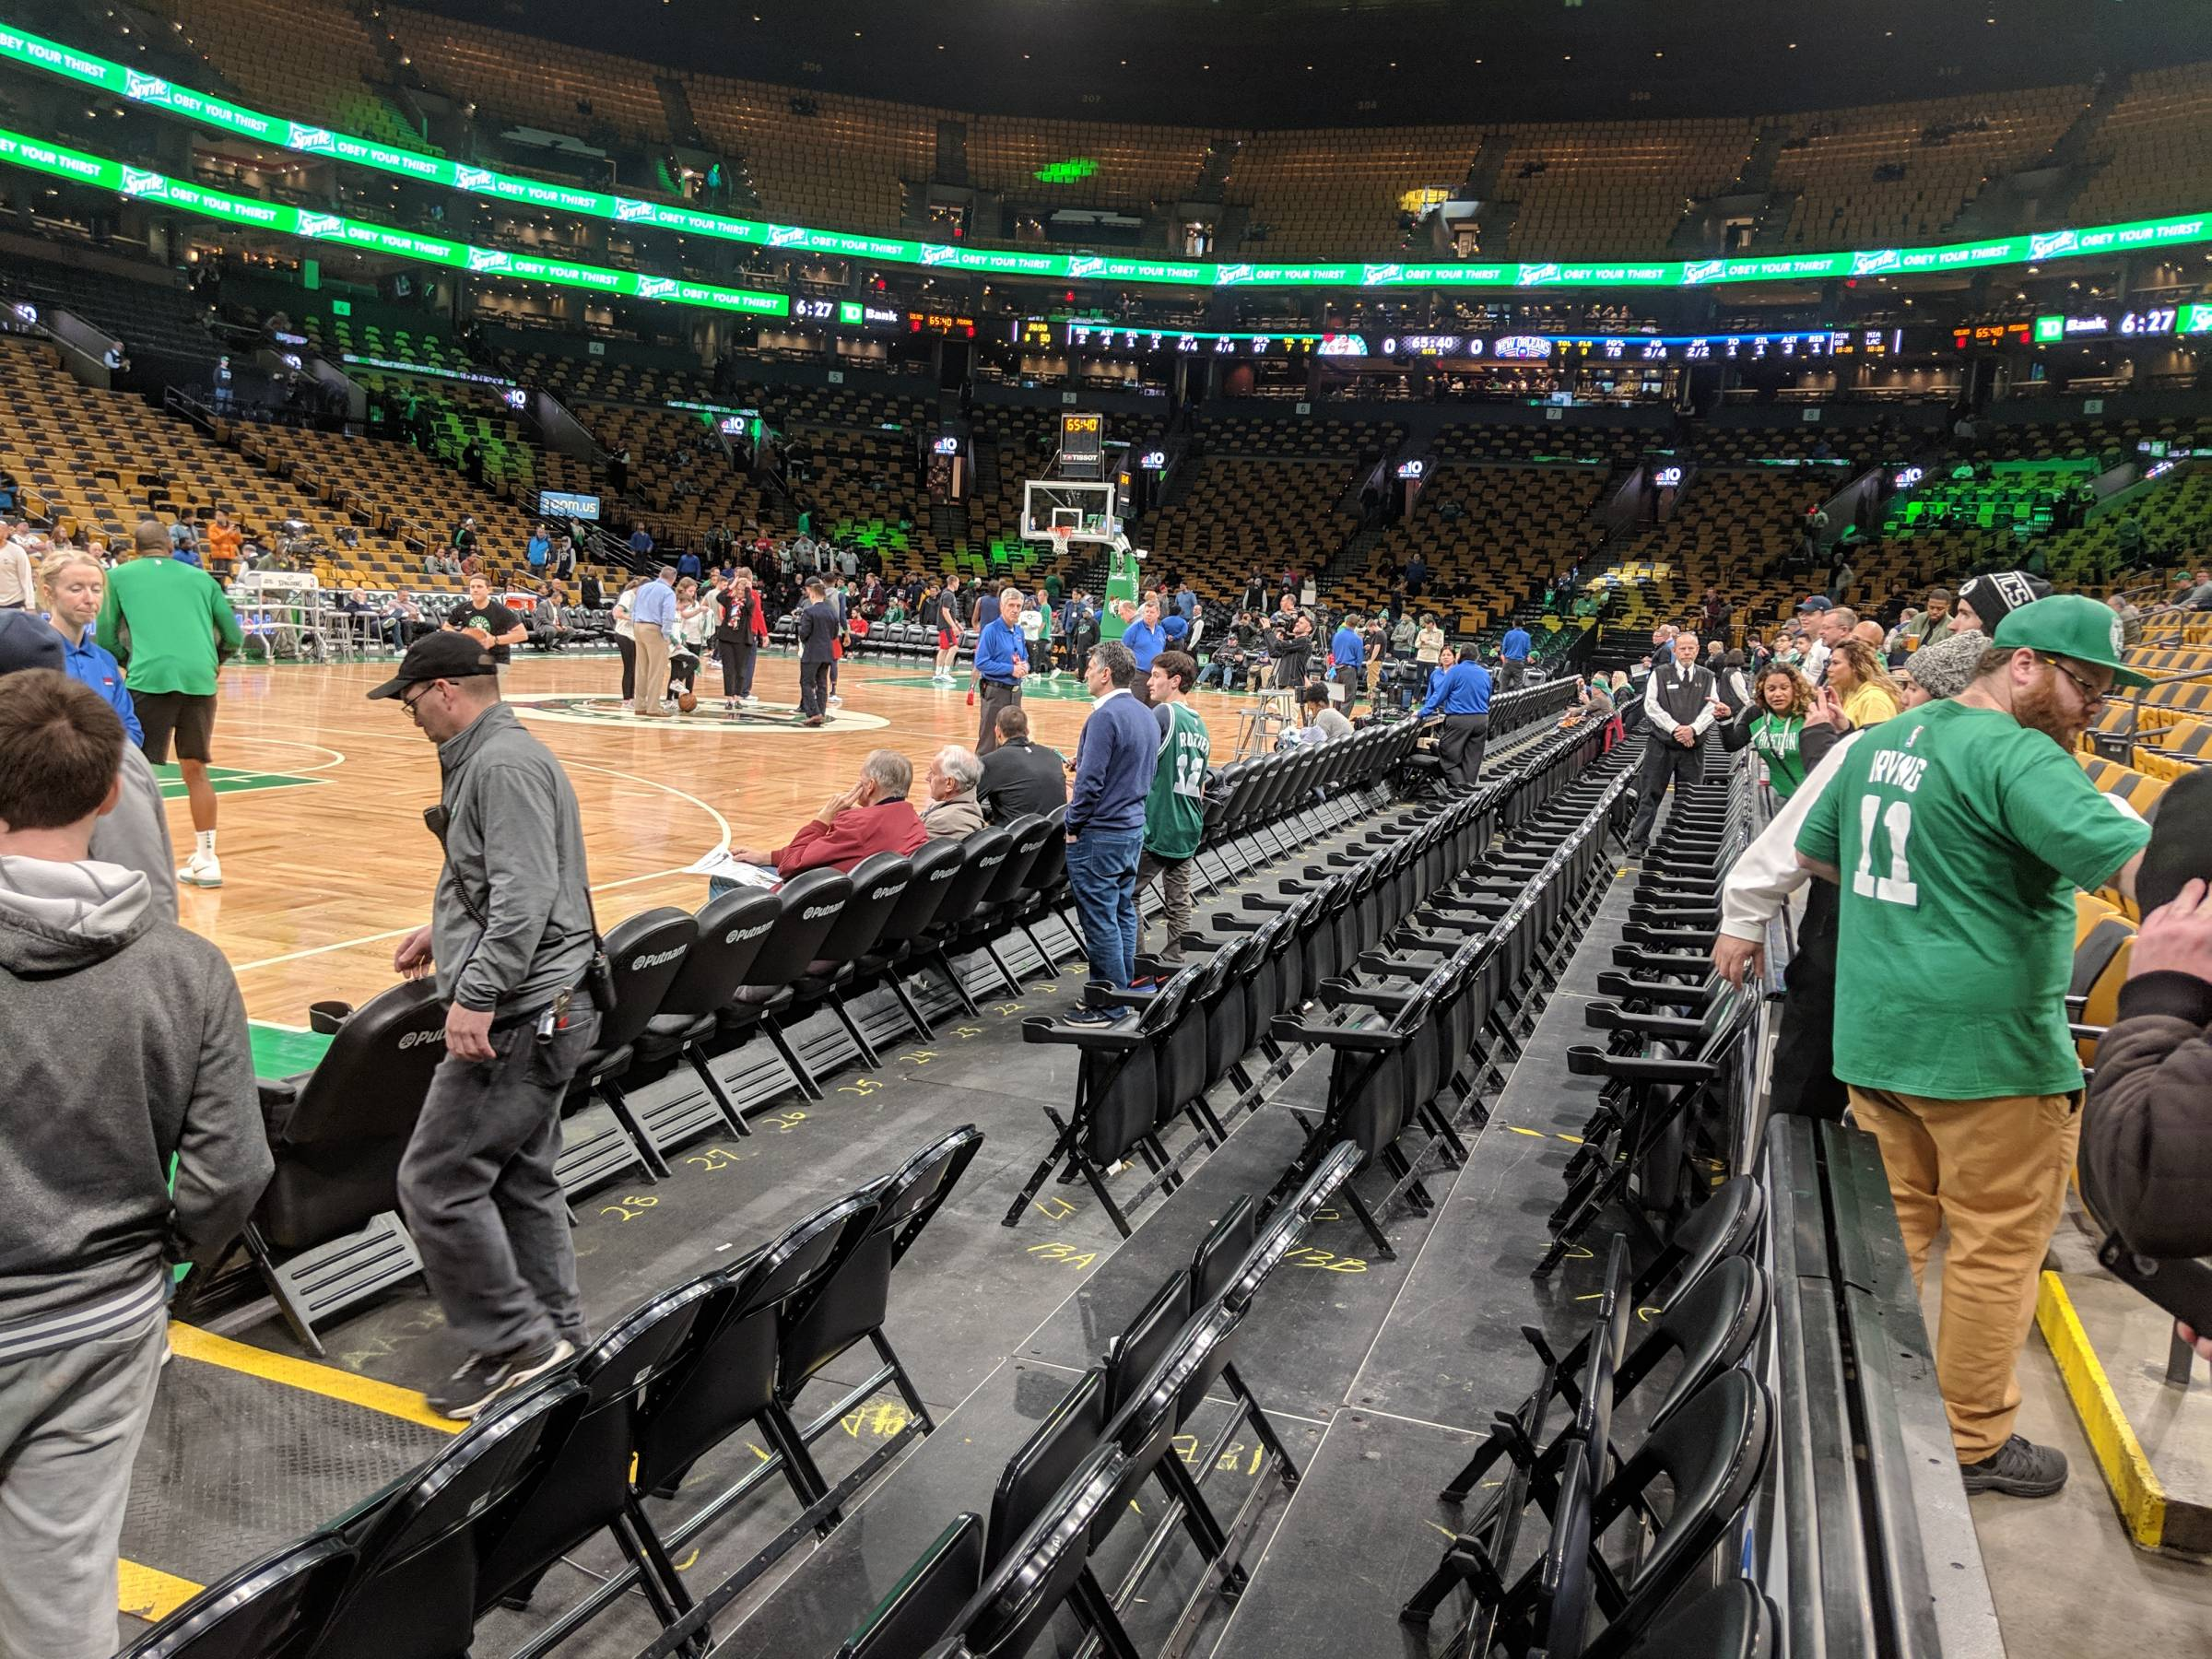 courtside seats at TD Garden in Boston